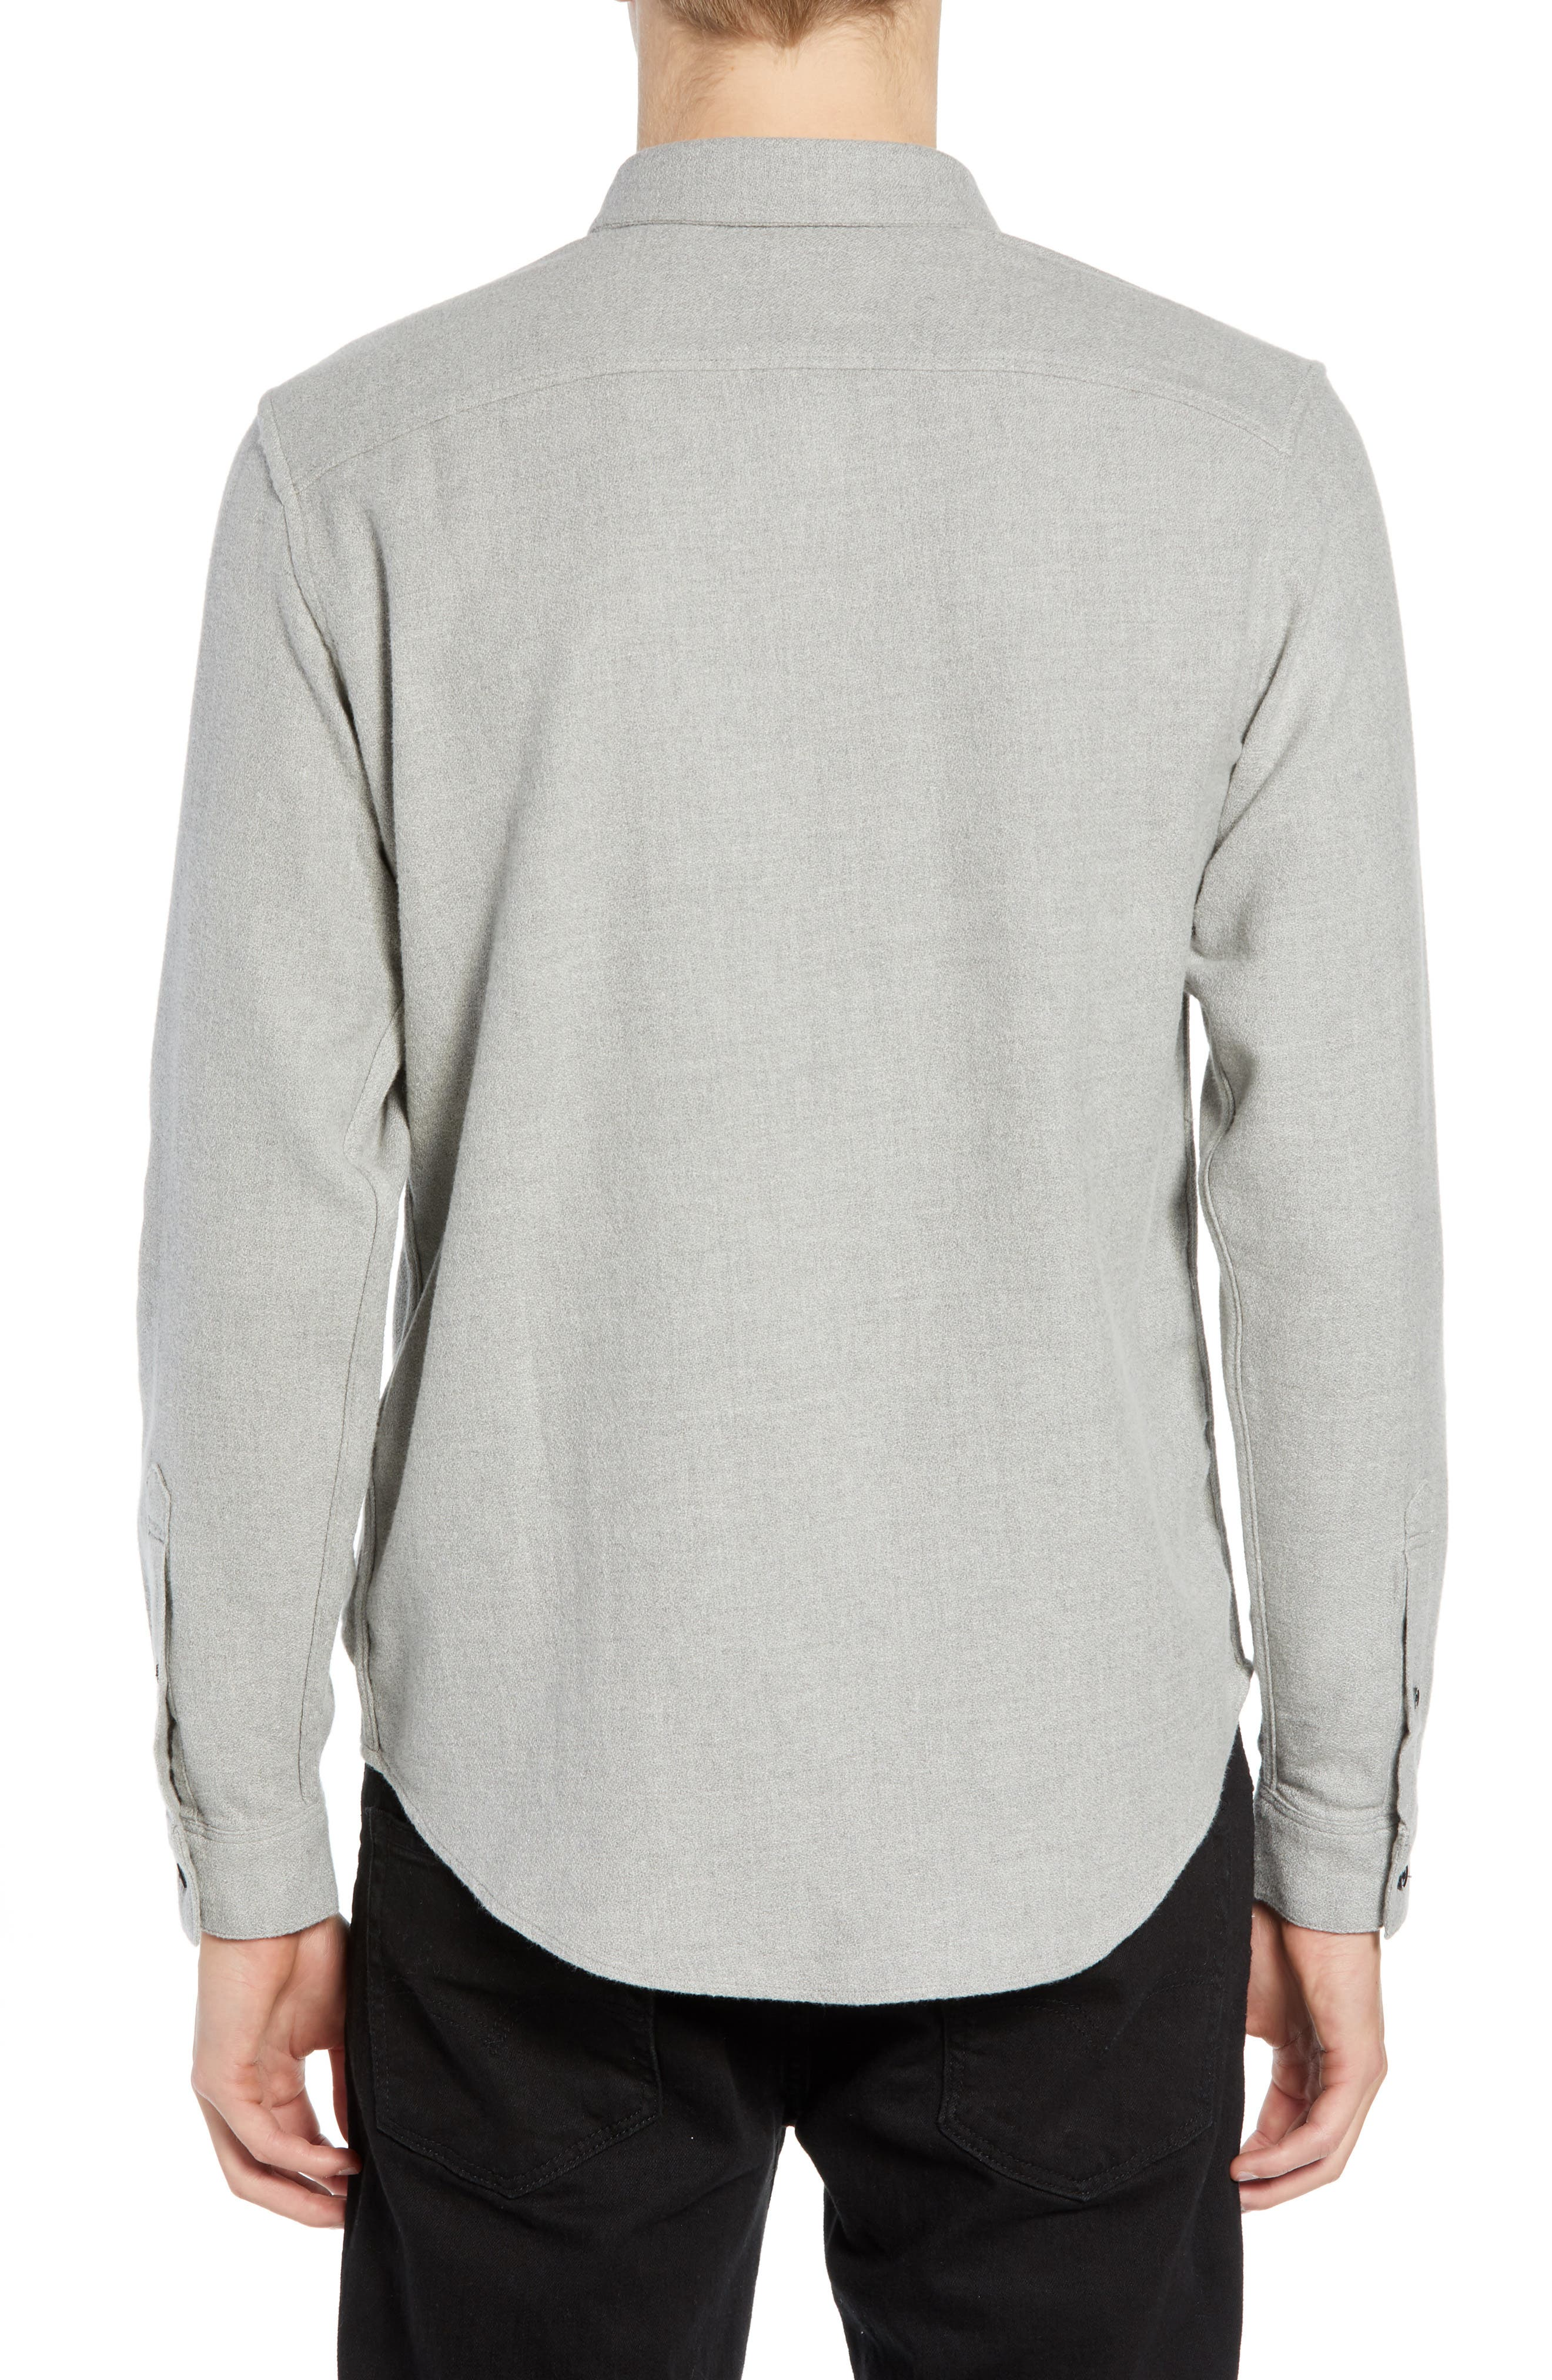 Levi's<sup>®</sup> Made & Crafted Regular Fit Mélange Shirt,                             Alternate thumbnail 3, color,                             020